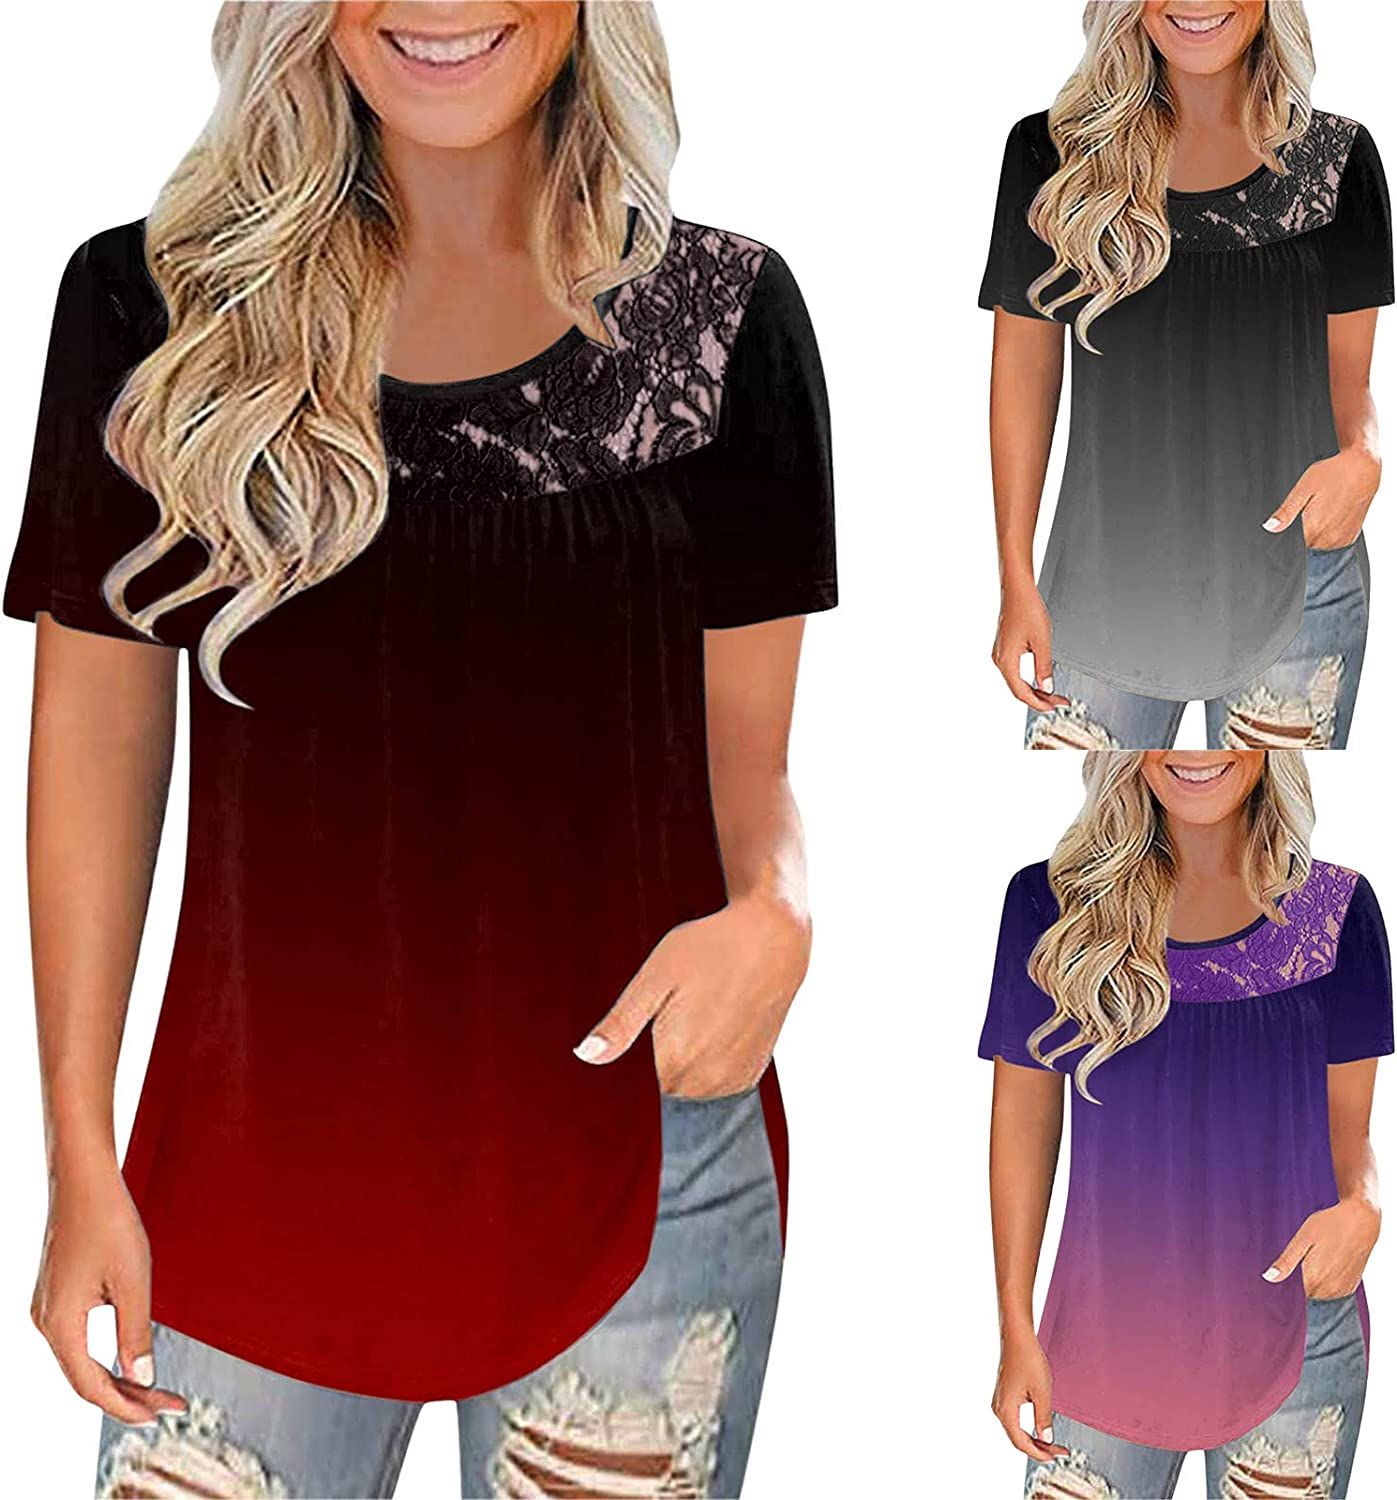 AODONG Tops for Women Sexy Casual Womens Tops Short Sleeve,Womens Casual T Shirts Short Sleeve V Neck Tunic Front Cross T-Shirts Tops Loose Blouse Red